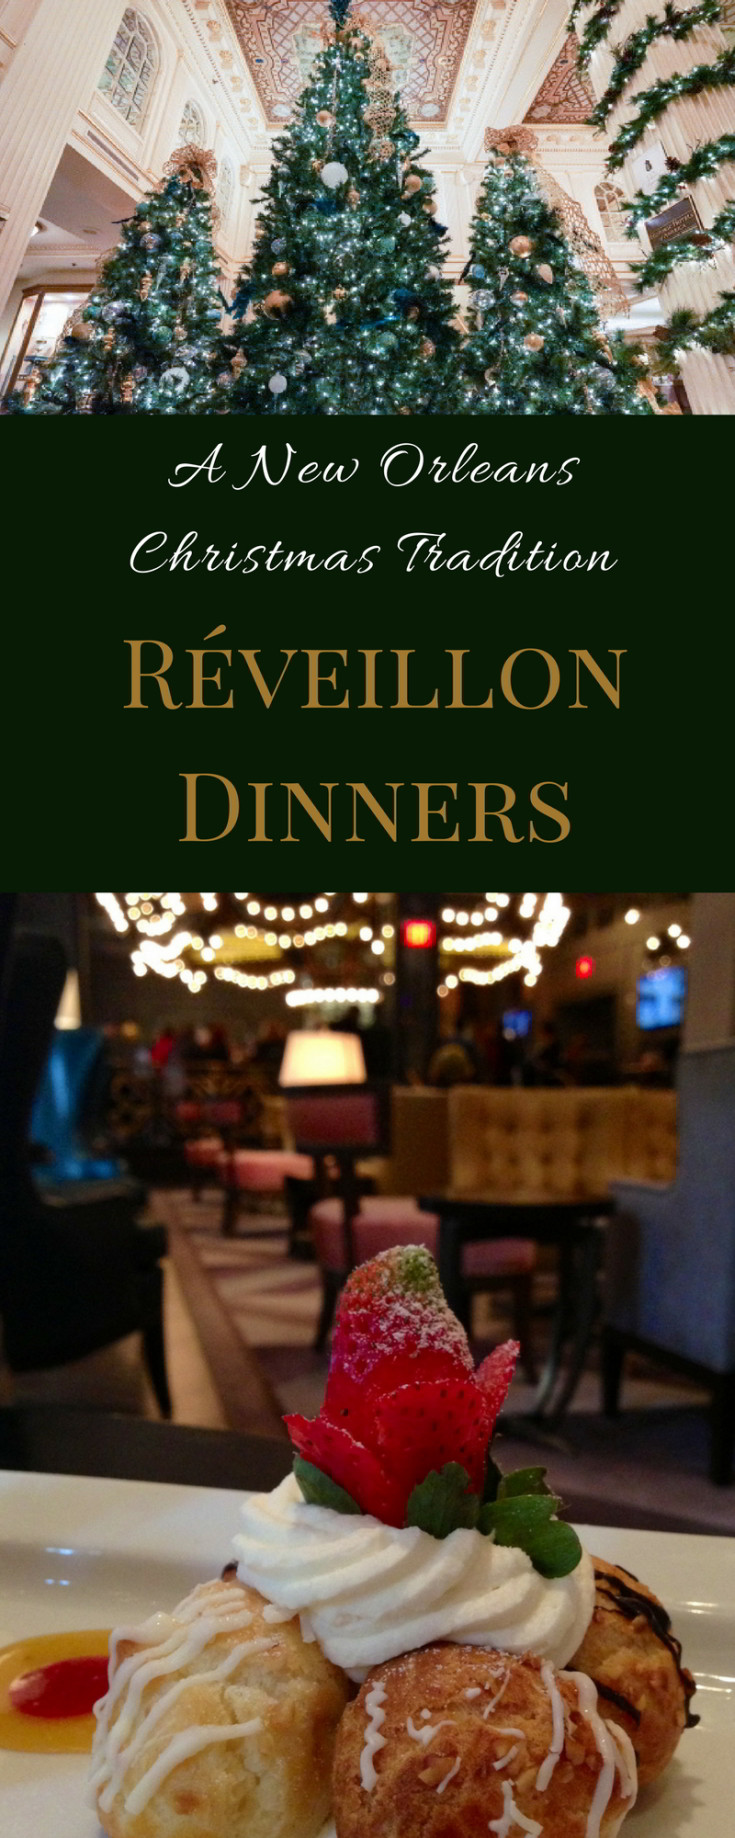 Christmas Dinners In New Orleans  A Christmas Tradition Réveillon Dinners in New Orleans